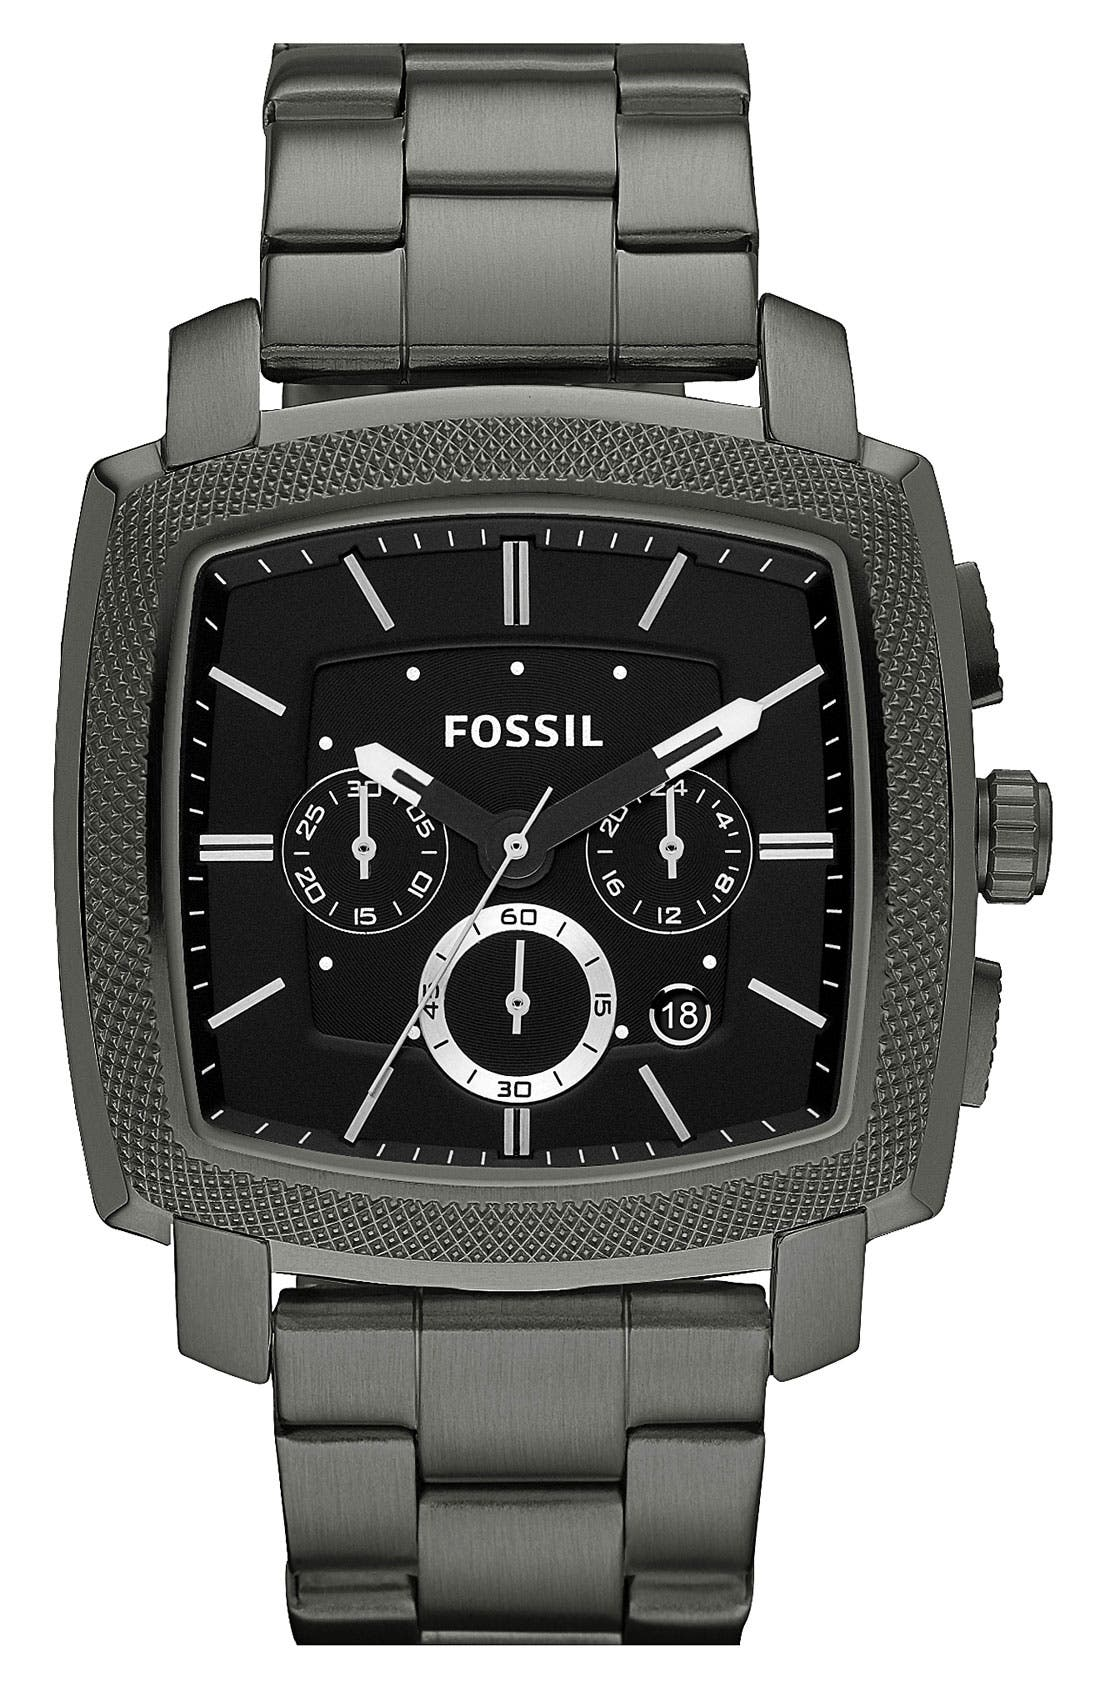 Main Image - Fossil 'Machine' Square Dial Chronograph Watch, 44mm